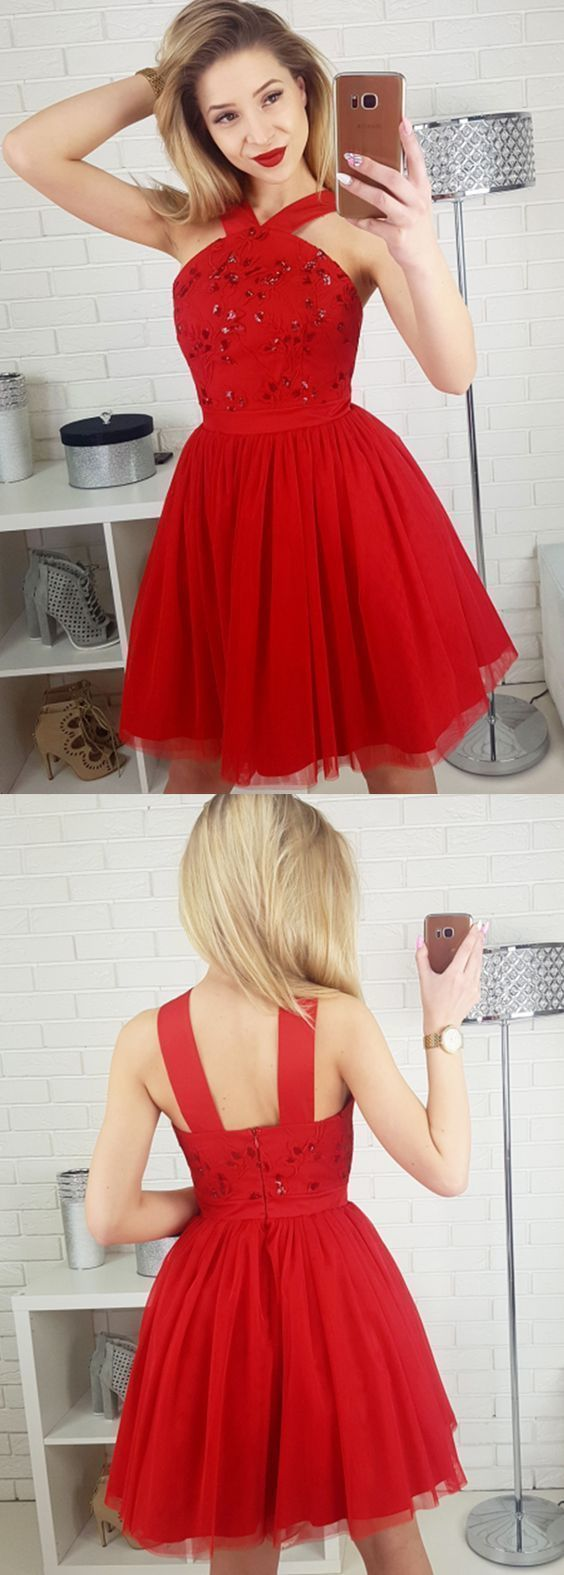 Stylish aline straps red tulle short homecoming dress with sequins